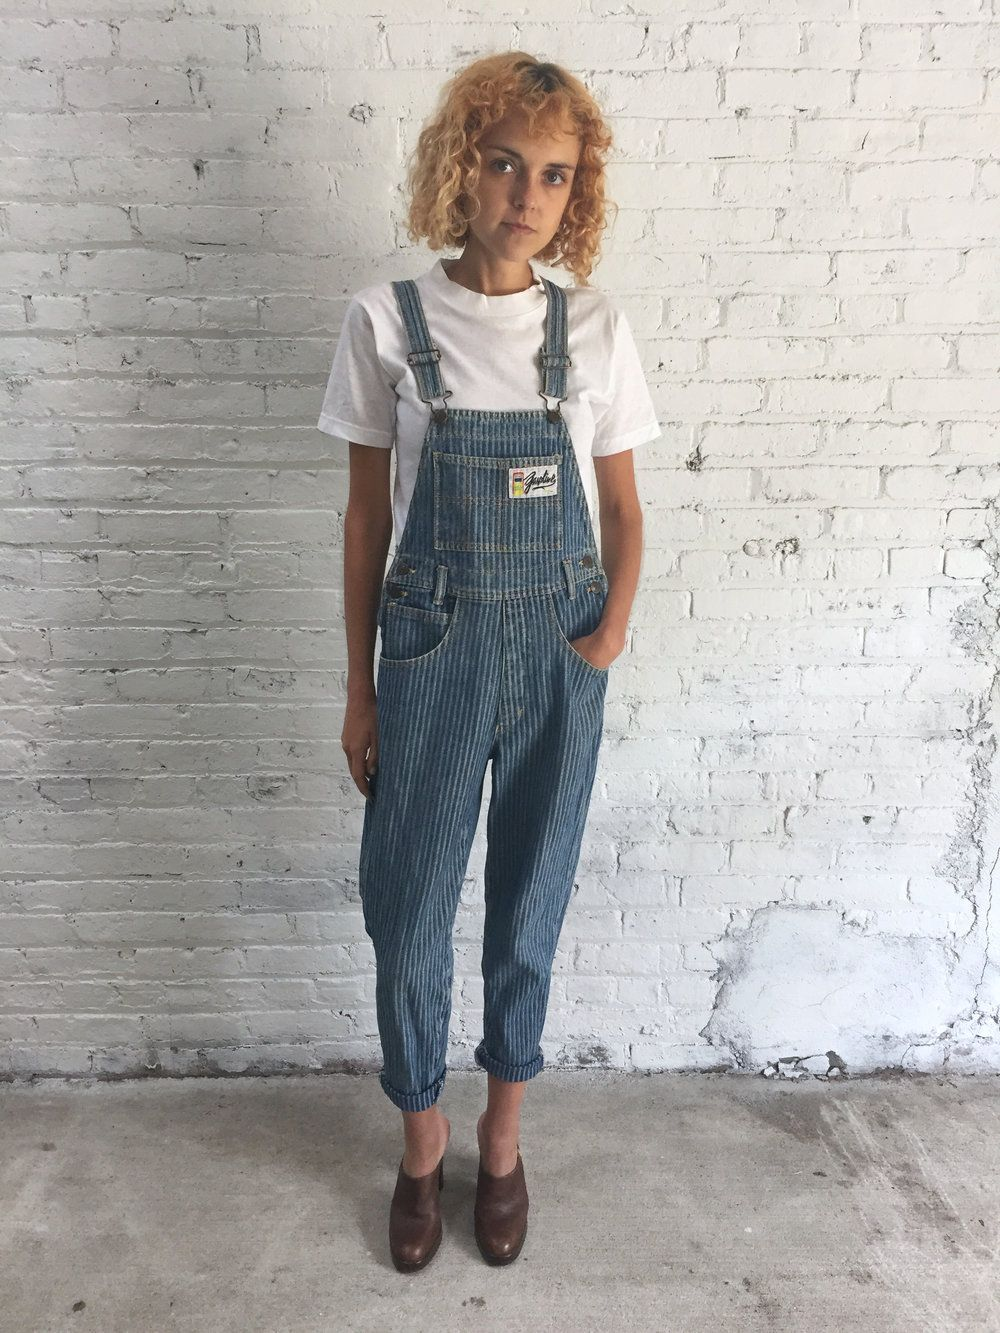 aac529033ea 80s conductor stripe denim overalls   women s vintage fitted hickory stripe  overalls   chikory herringbone denim overalls